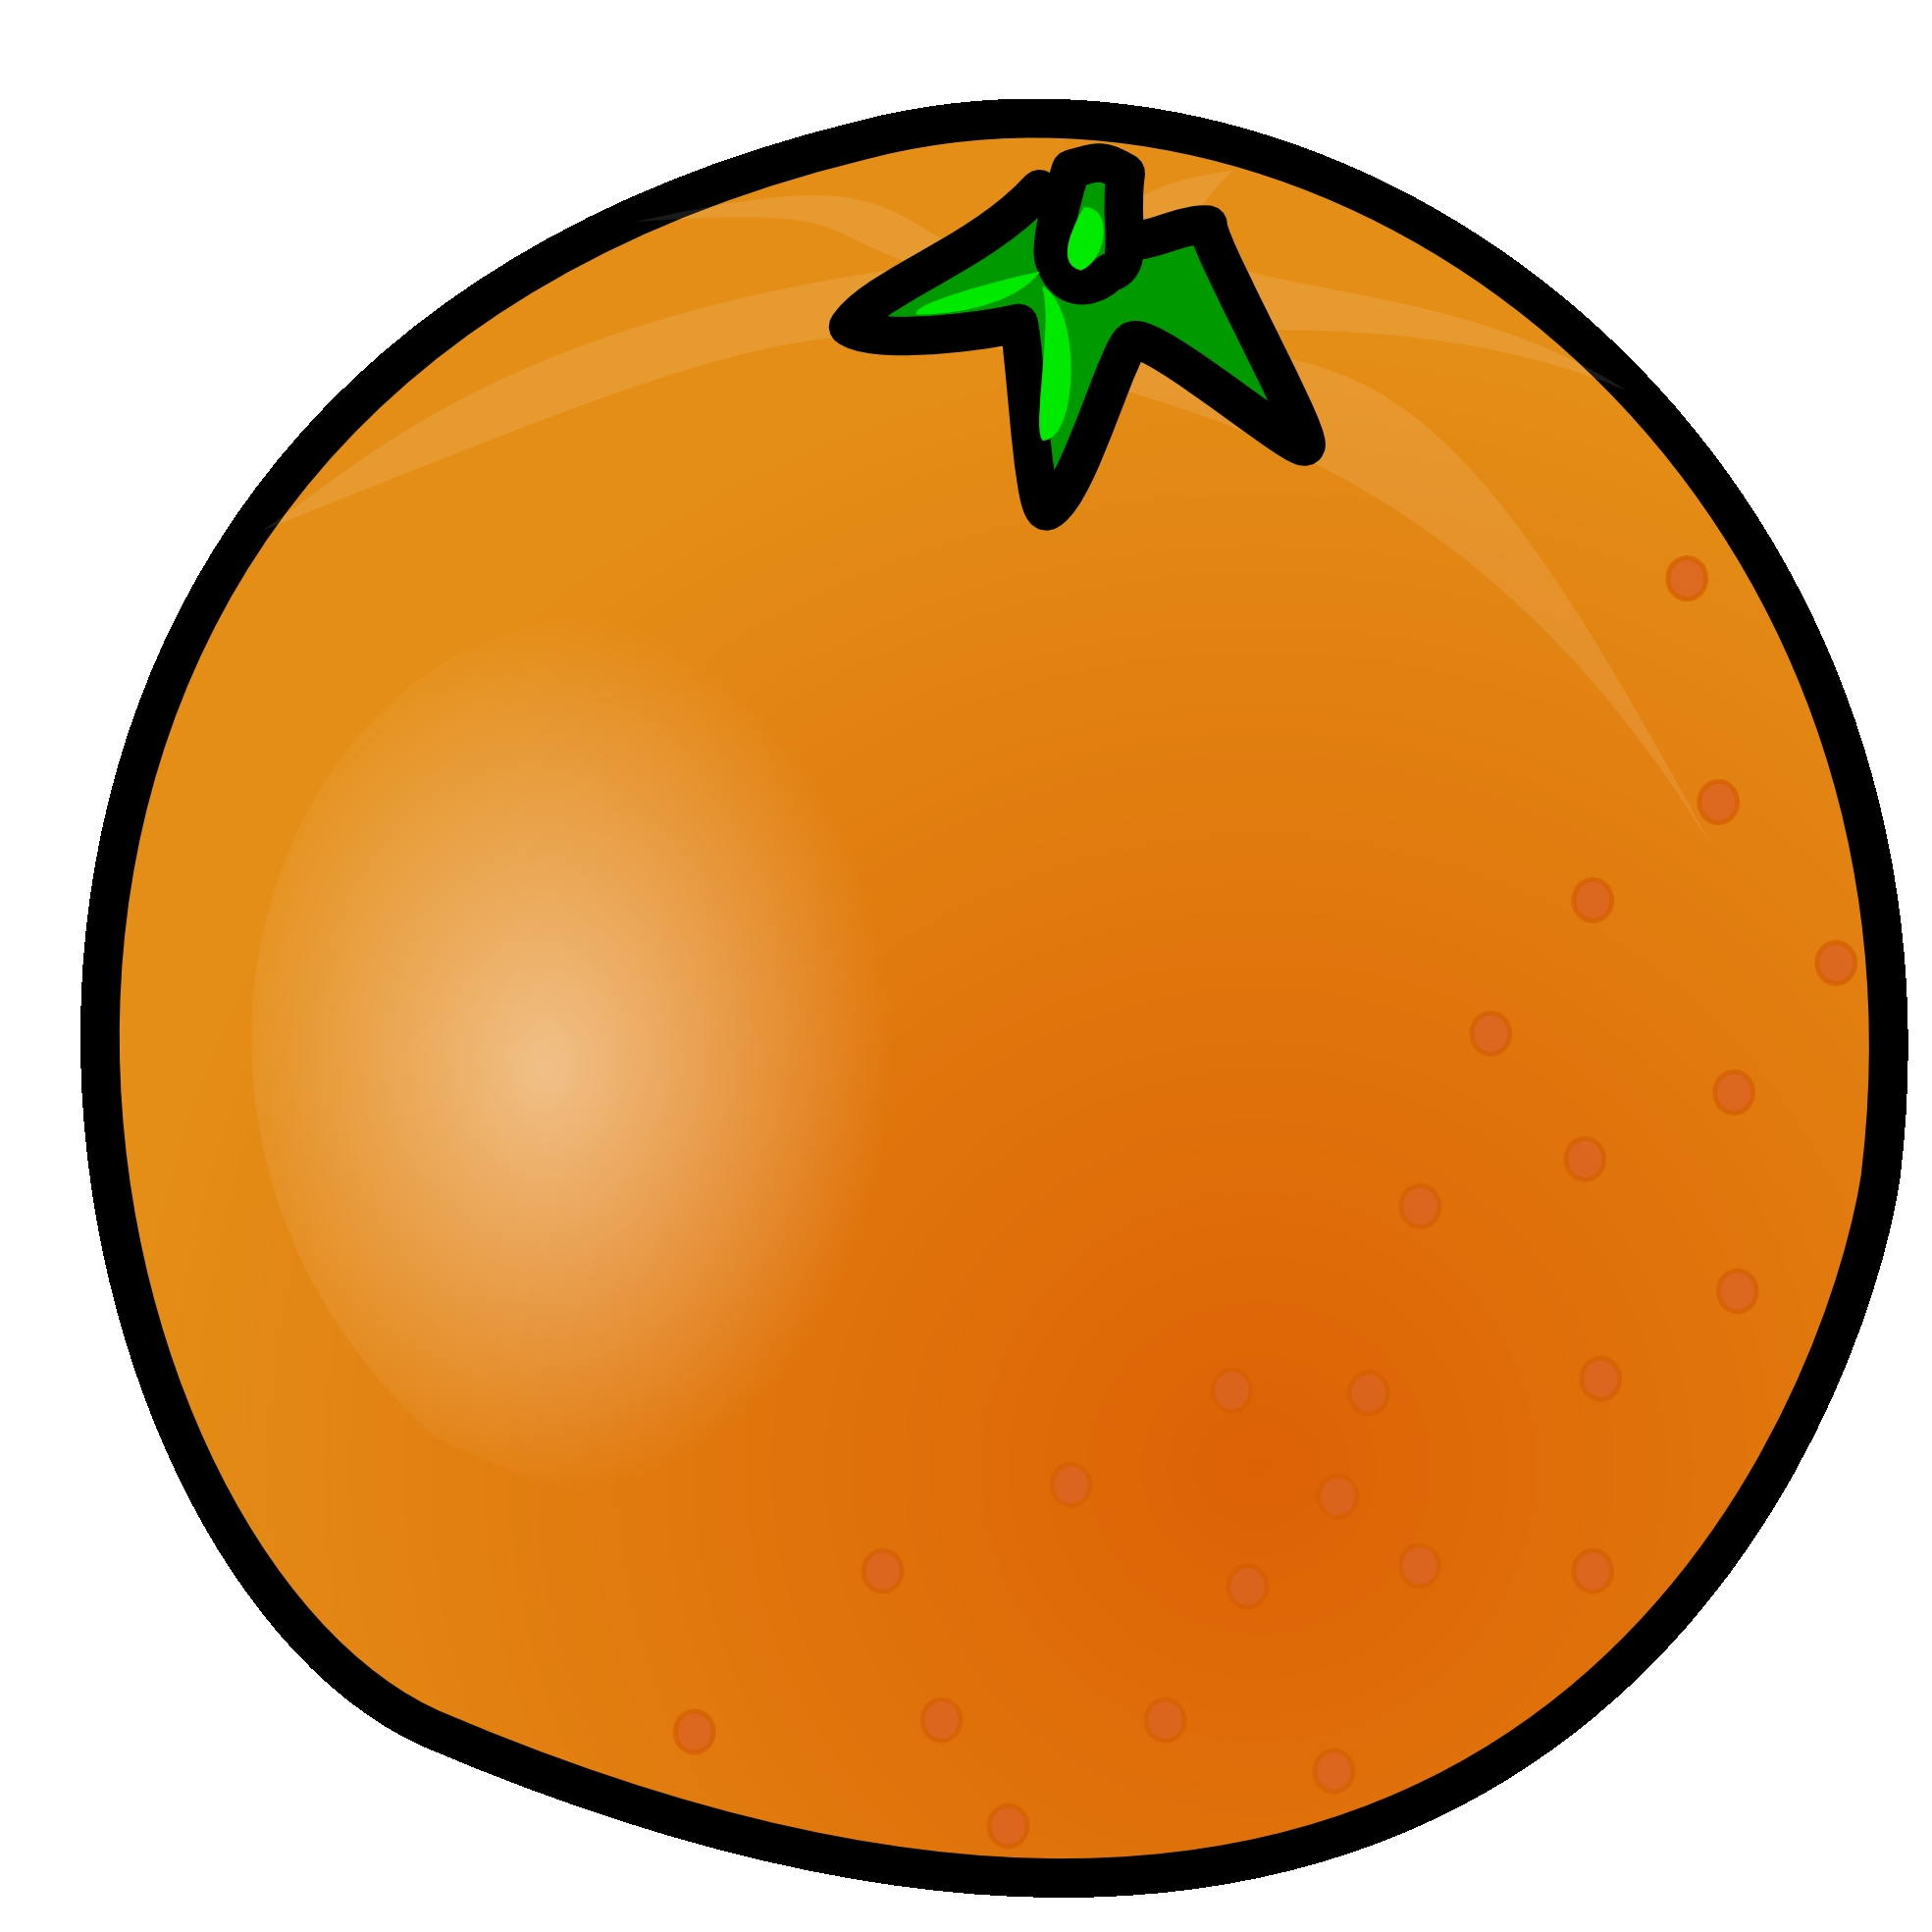 2 clipart orange. Fresh design digital collection